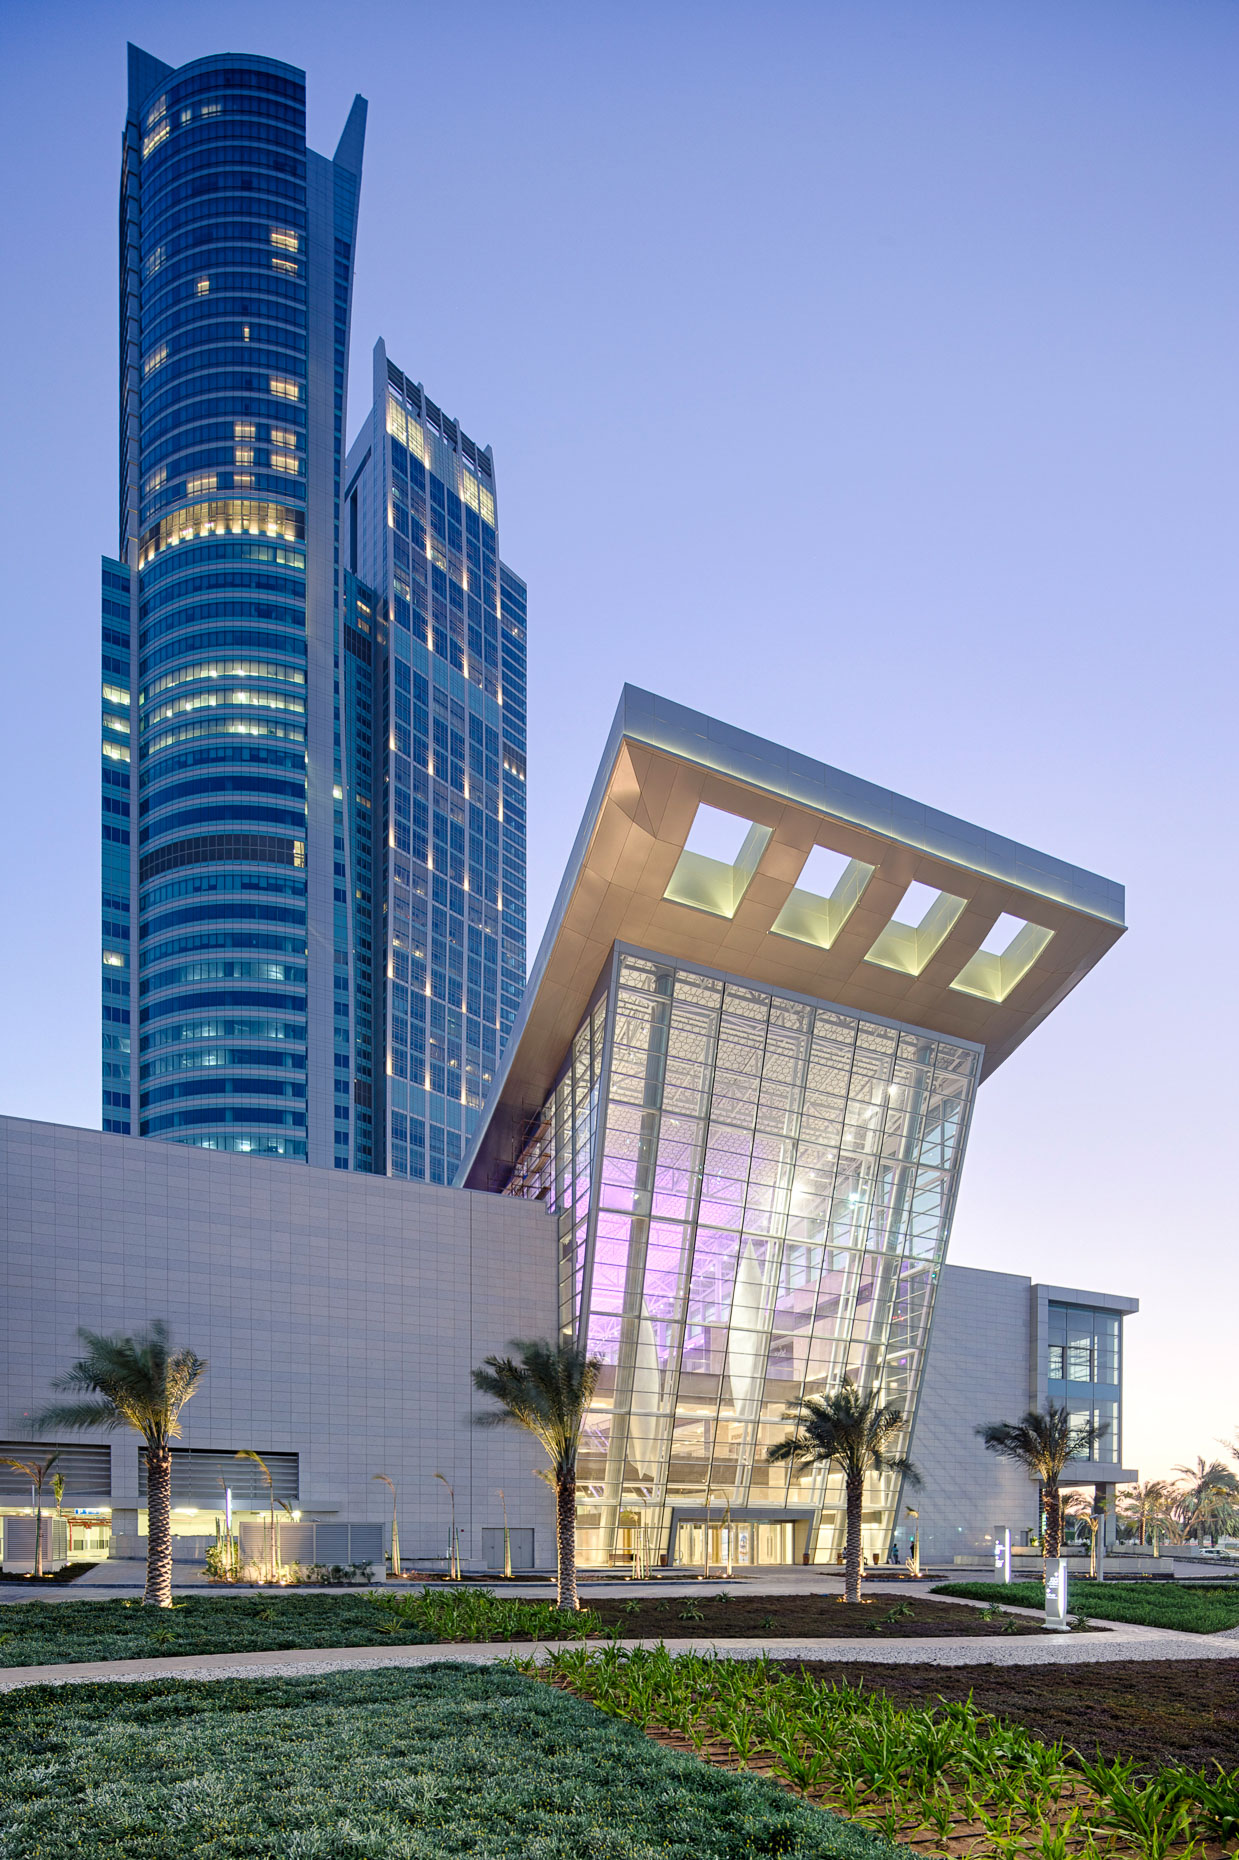 Abu Dhabi Mall Exterior Photography, UAE